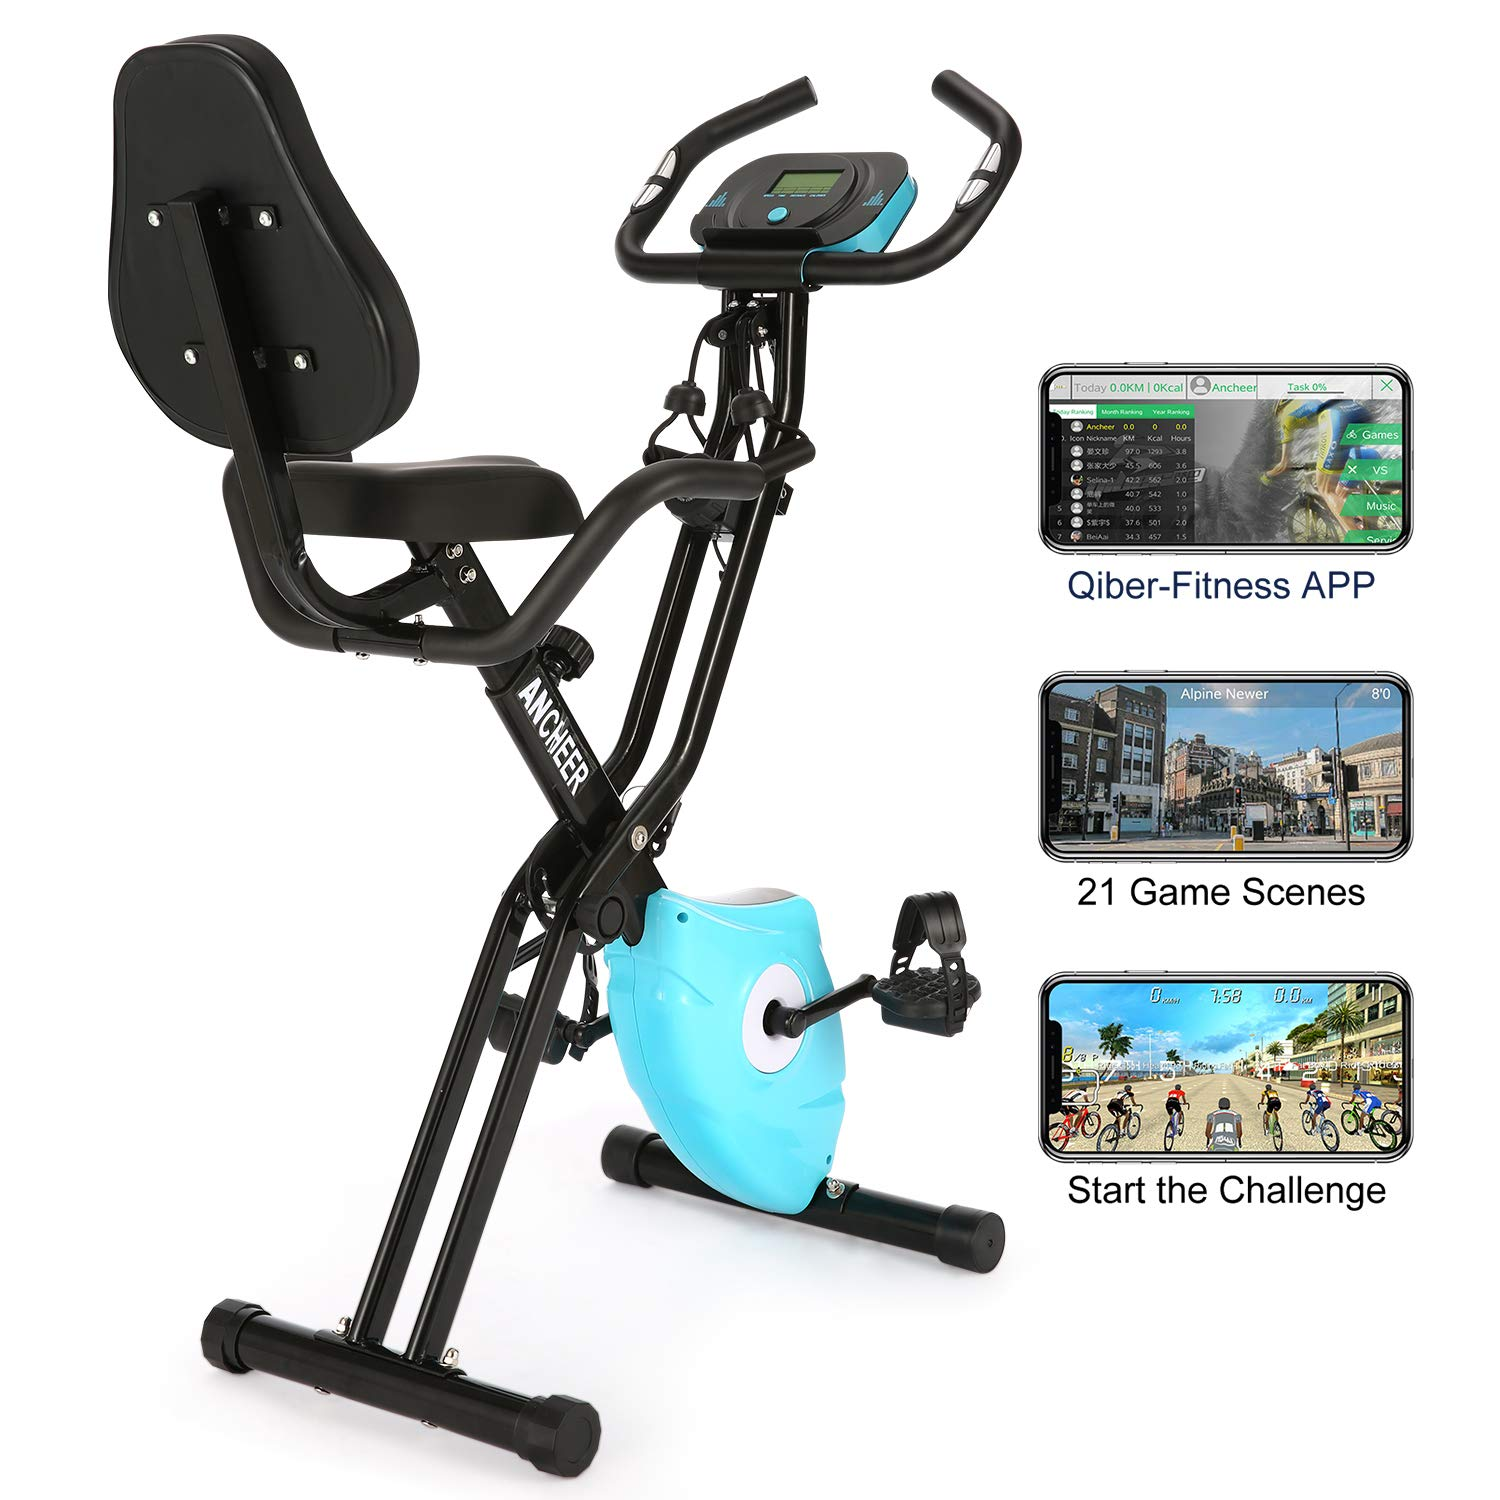 ANCHEER As Seen On TV Cycle 3-in-1 Stationary Bike – Folding Indoor Exercise Bike with APP and Heart Monitor – Perfect Home Exercise Machine for Cardio